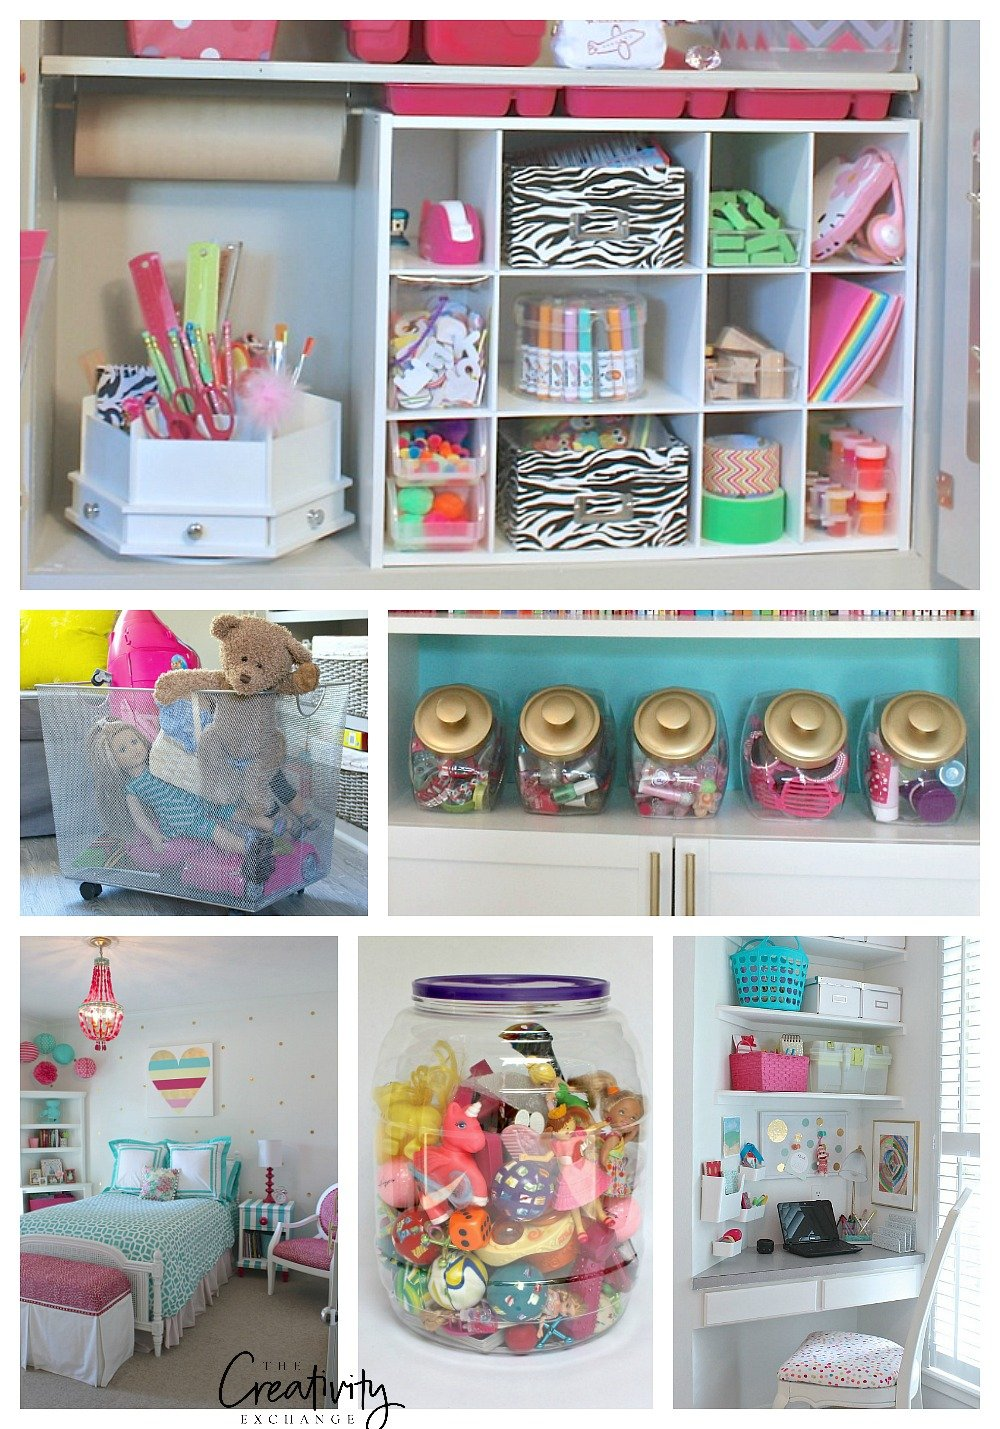 Quick tricks for organizing childrens spaces